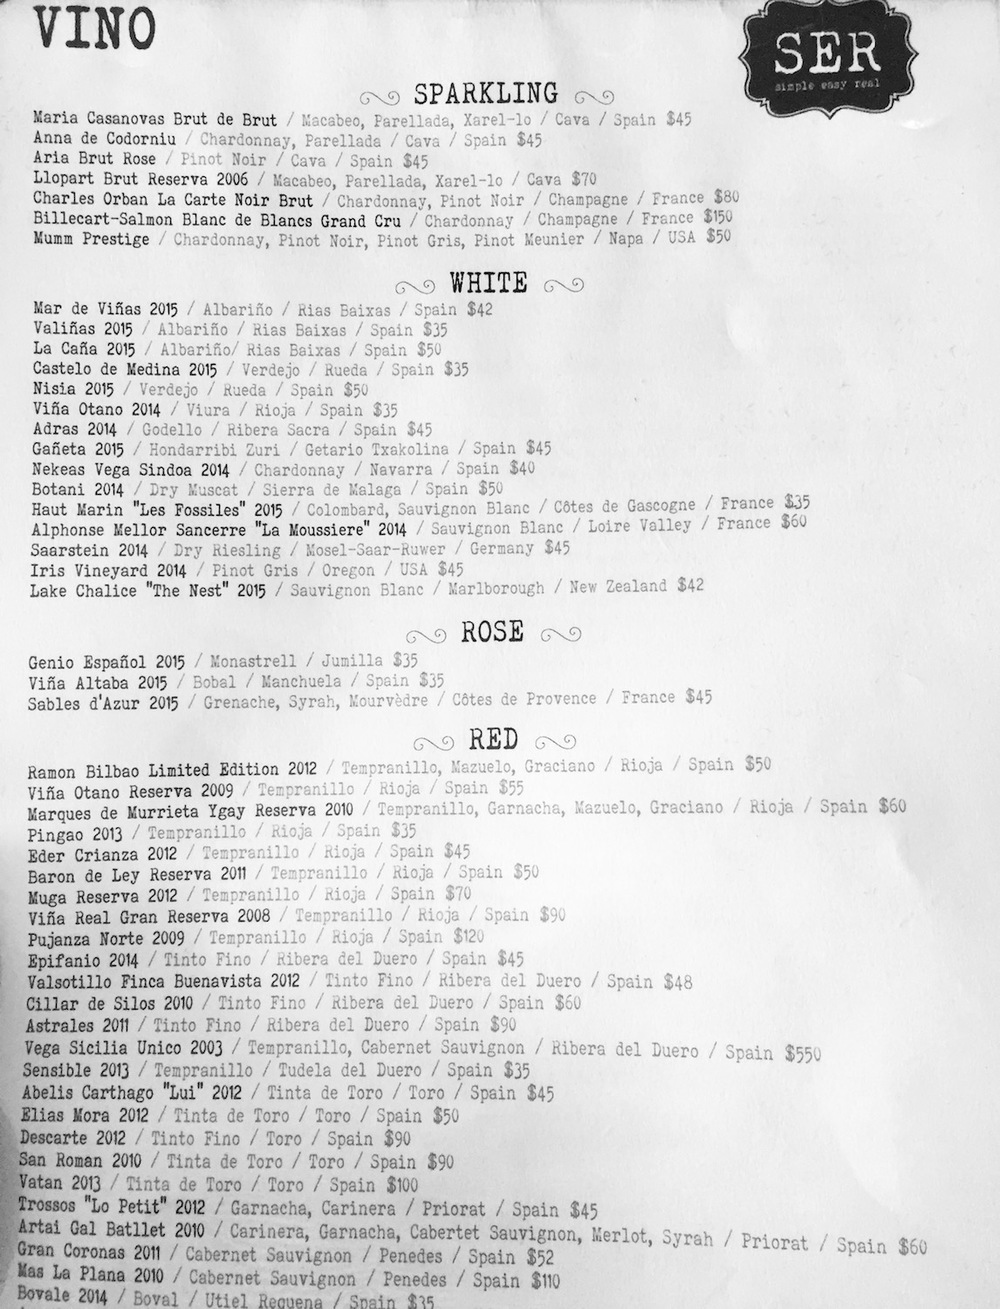 The wine list from one of our favorite restaurants in Arlington, VA. Their sangria is off the charts, and you can't go wrong with their wine list, either. Note the number of Spanish wines on the menu. Spain makes phenomenal wines, and is one of the world's largest producers, so , you will likely want to order one of the Spanish wines. This list shows us the wine by Name of Bottle or Winery Vintage / Grape Varietal / Subregion / Country Price, so for example the first bottle on the WHITE list is the Mar de Viñas from 2015, which made from the Albariño grape in Rias Baixas, Spain, and costs $42. The first bottle on the RED list can be read the same way, but note that it's a blend of juice from the Tempranillo, Mazuelo, and Graciano grapes.